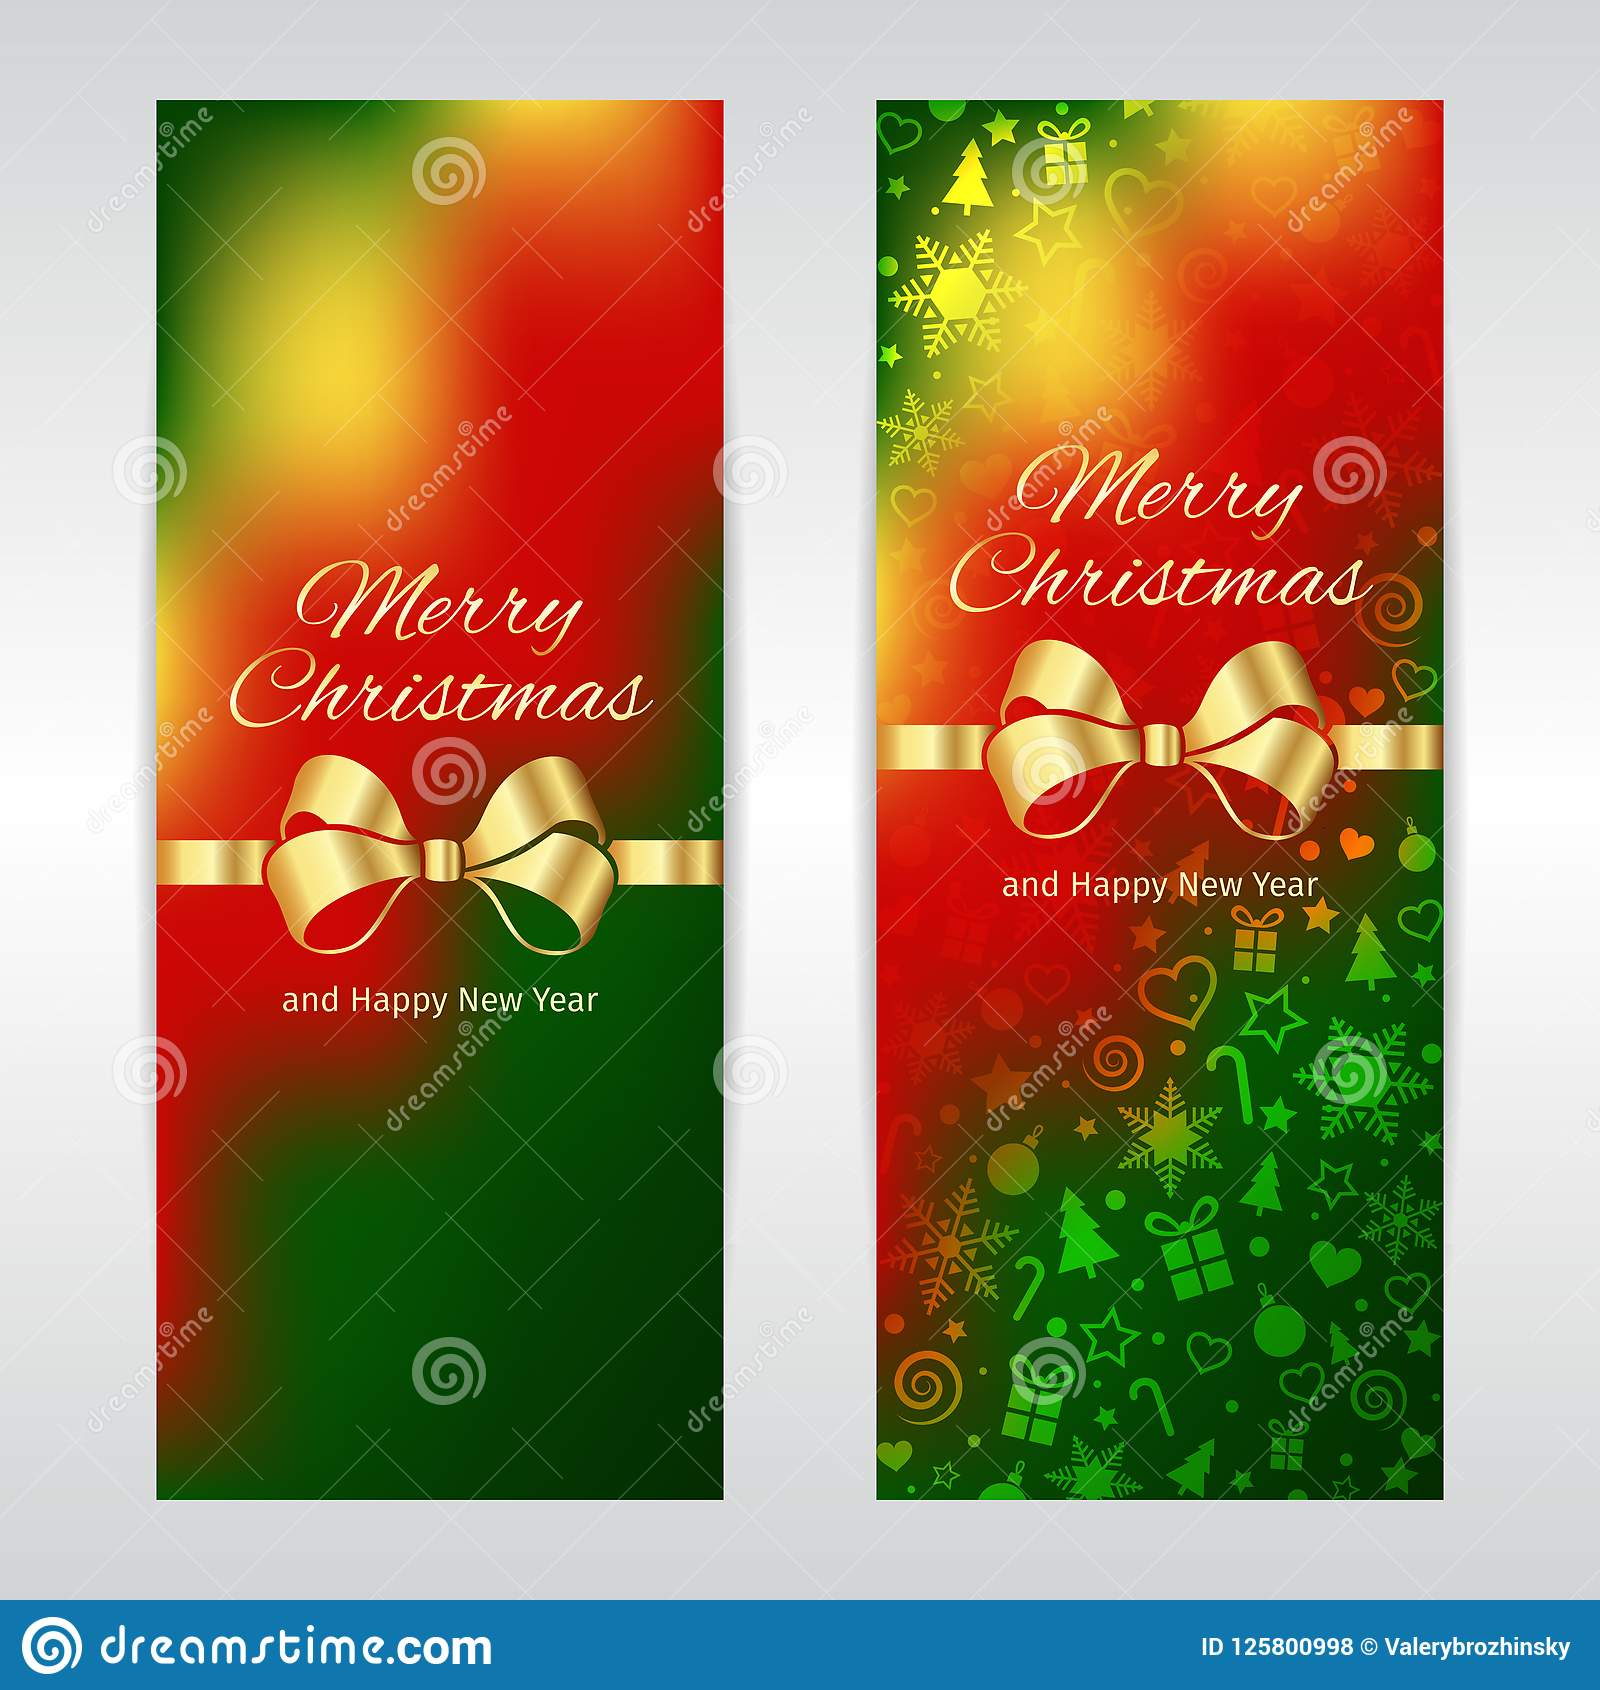 merry christmas new year vertical vector banners green red yellow template background with golden ribbon